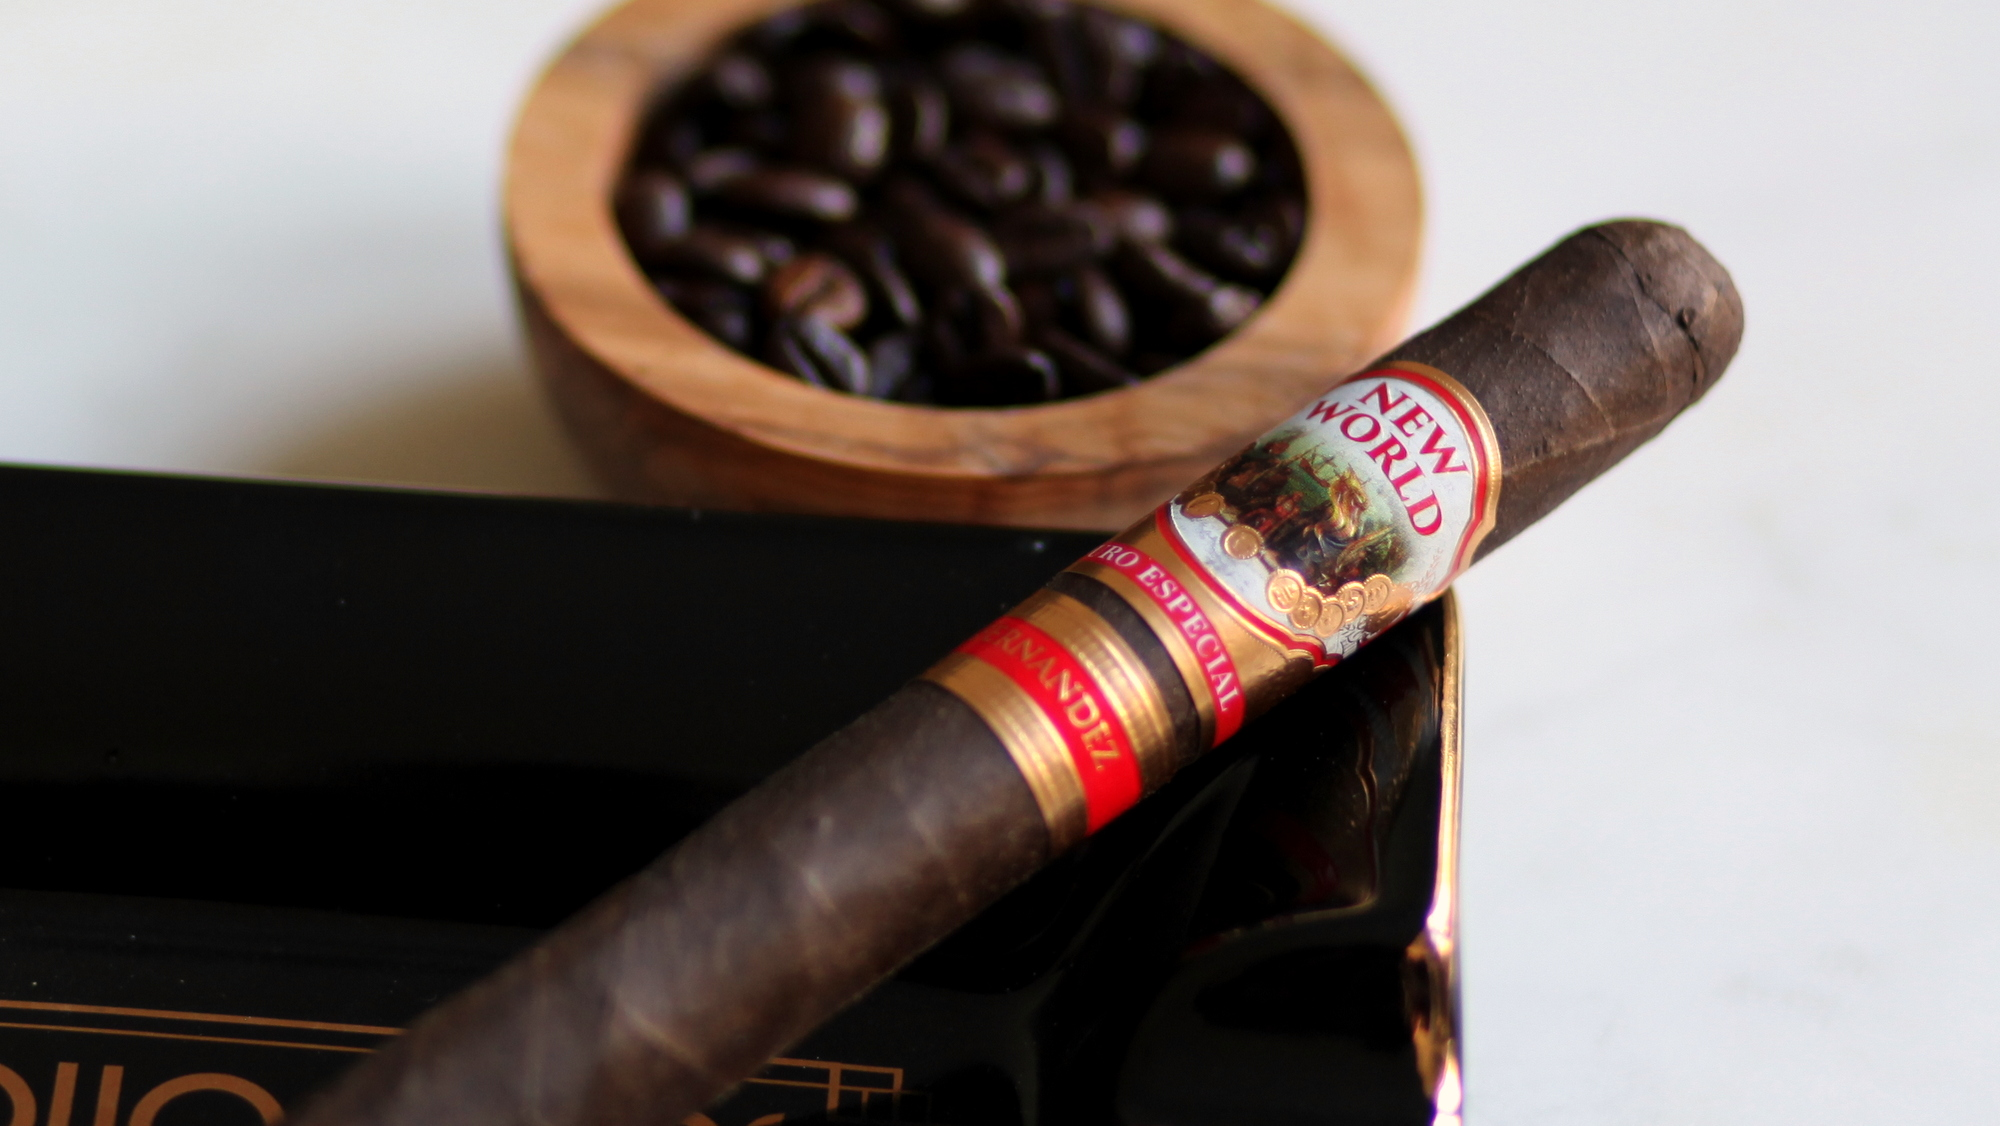 AJ Fernandez New World Puro Especial Toro Review